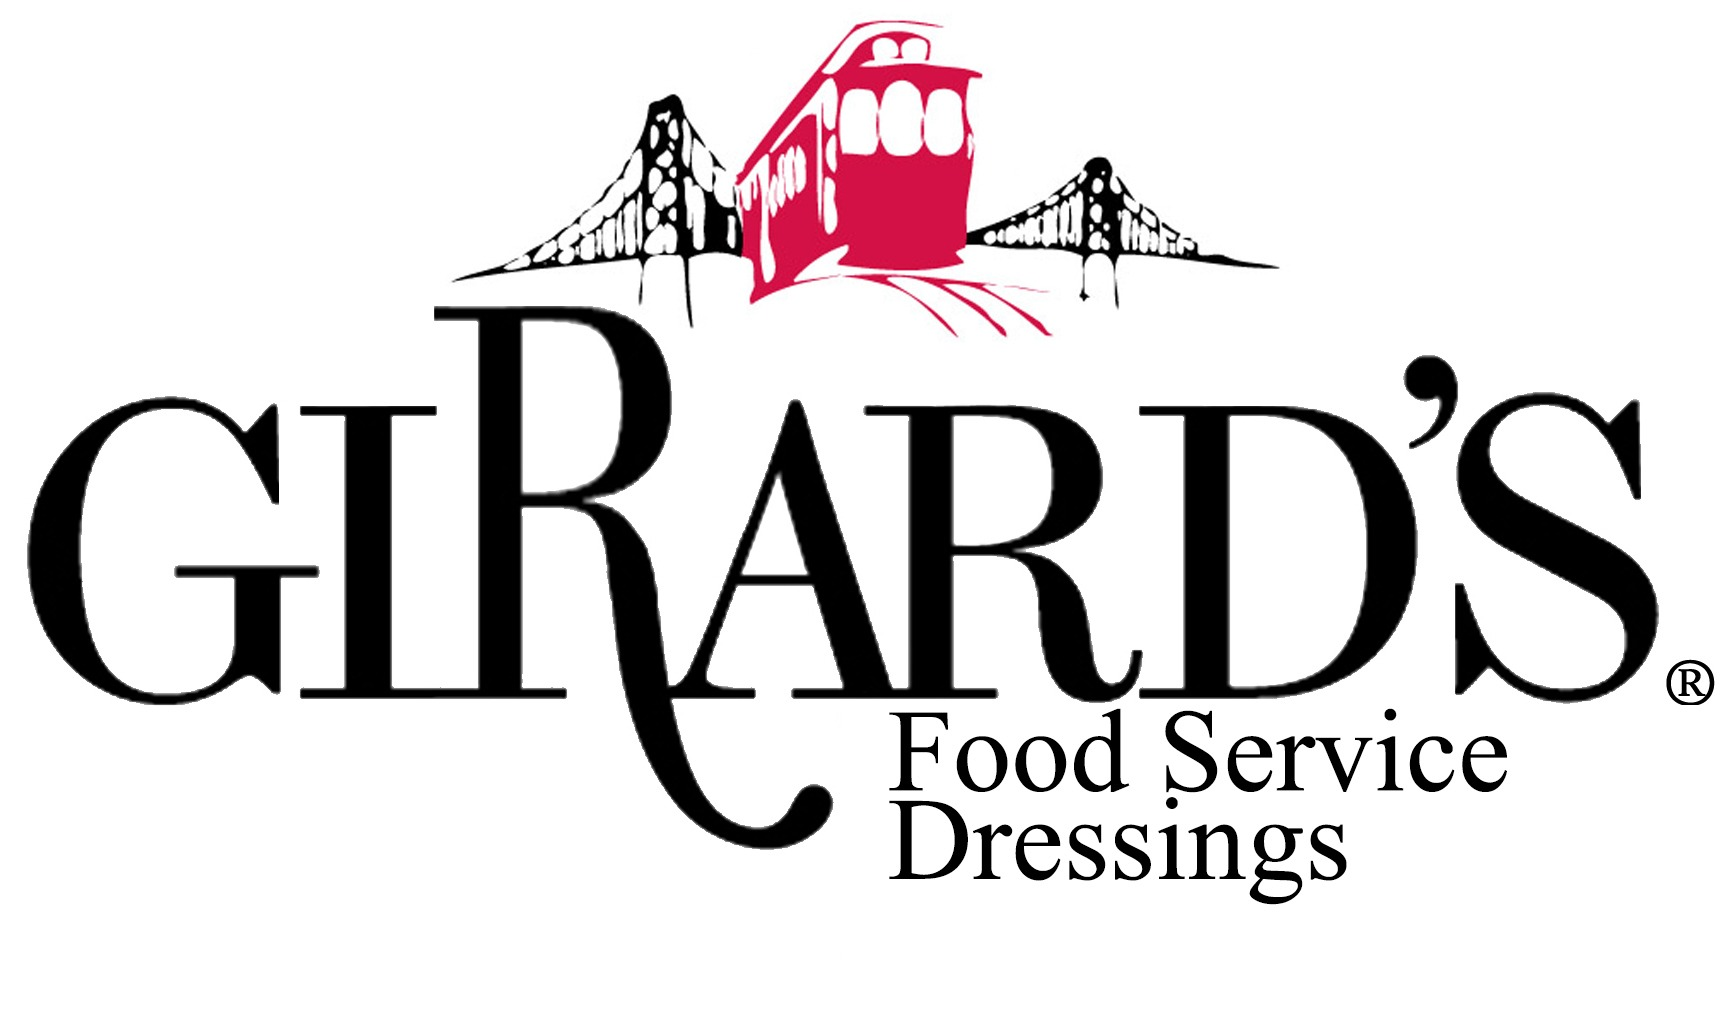 Girard Chinese Food